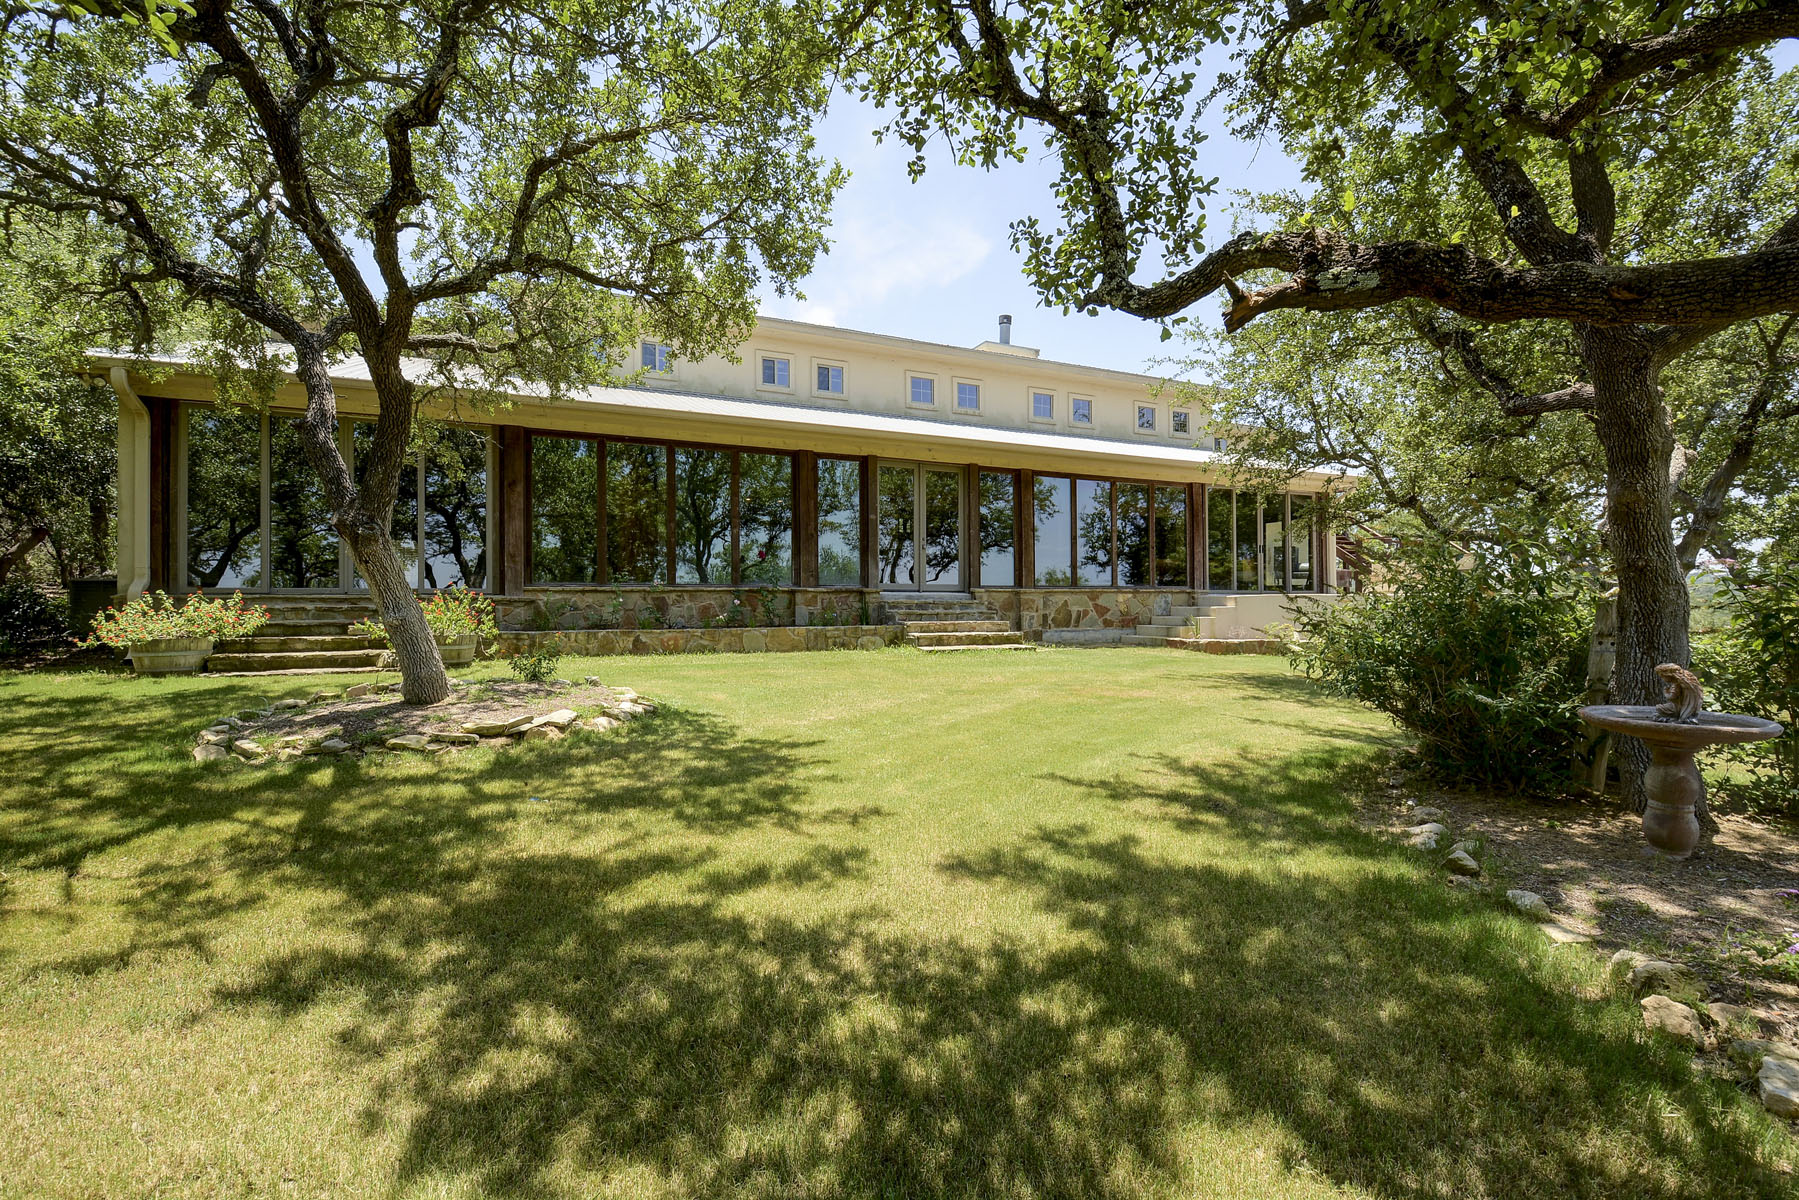 Ferme / Ranch / Plantation pour l Vente à Panoramic Views of the Texas Hill Country 140 Granite Ridge Dr Spicewood, Texas, 78669 États-Unis